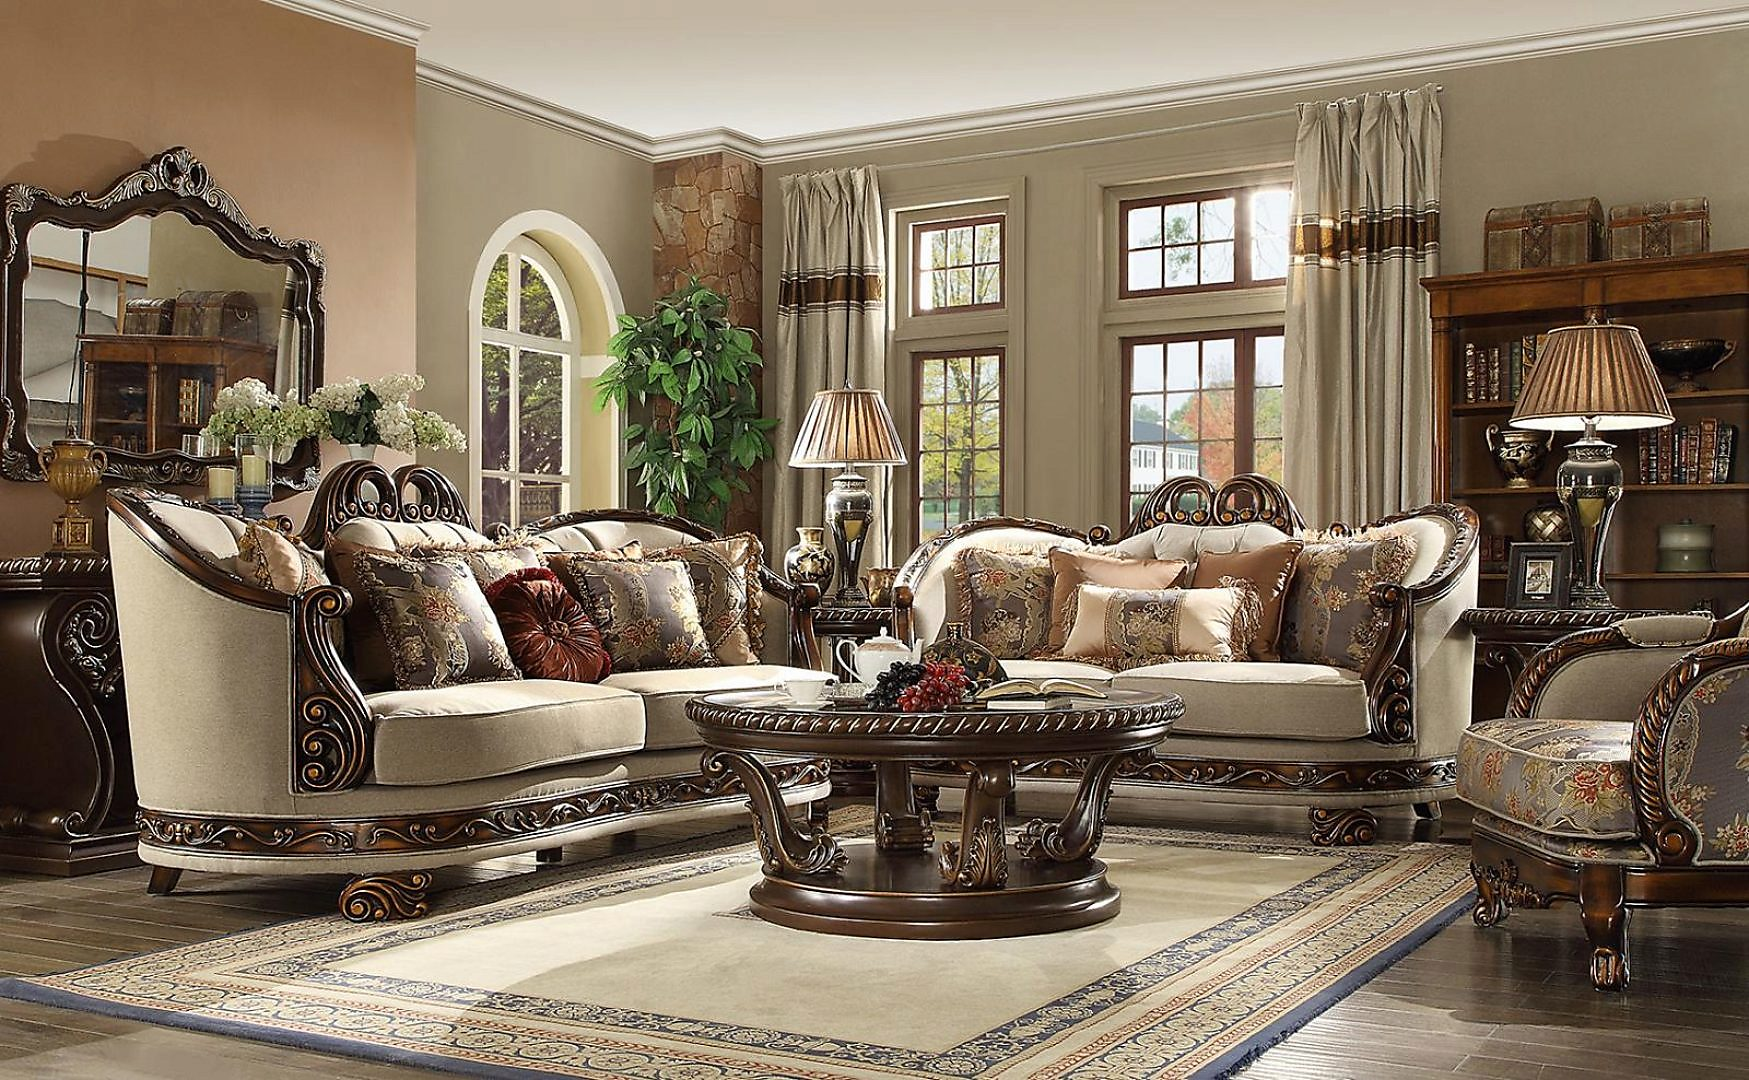 Traditional Hd-1623 Sofa Loveseat and Chair Set 3Pcs by Homey Design